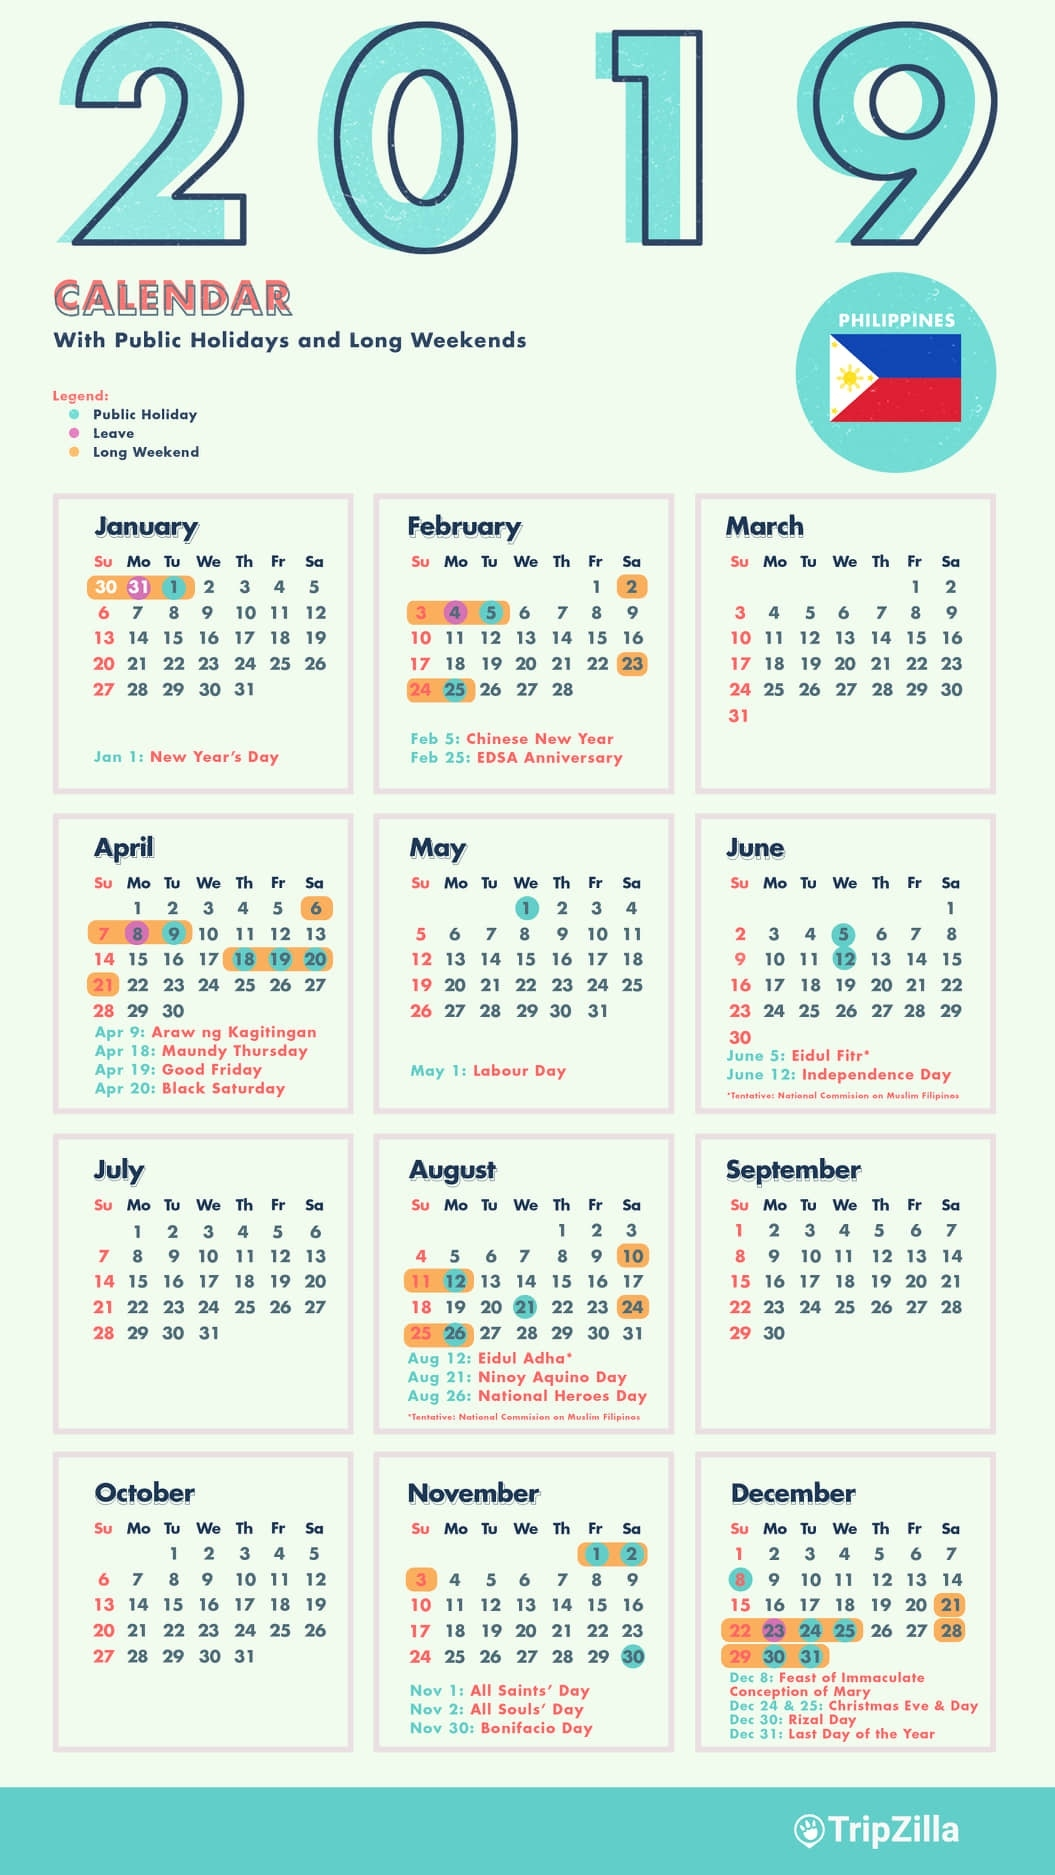 10 Long Weekends In The Philippines In 2019 With Calendar Cheatsheet